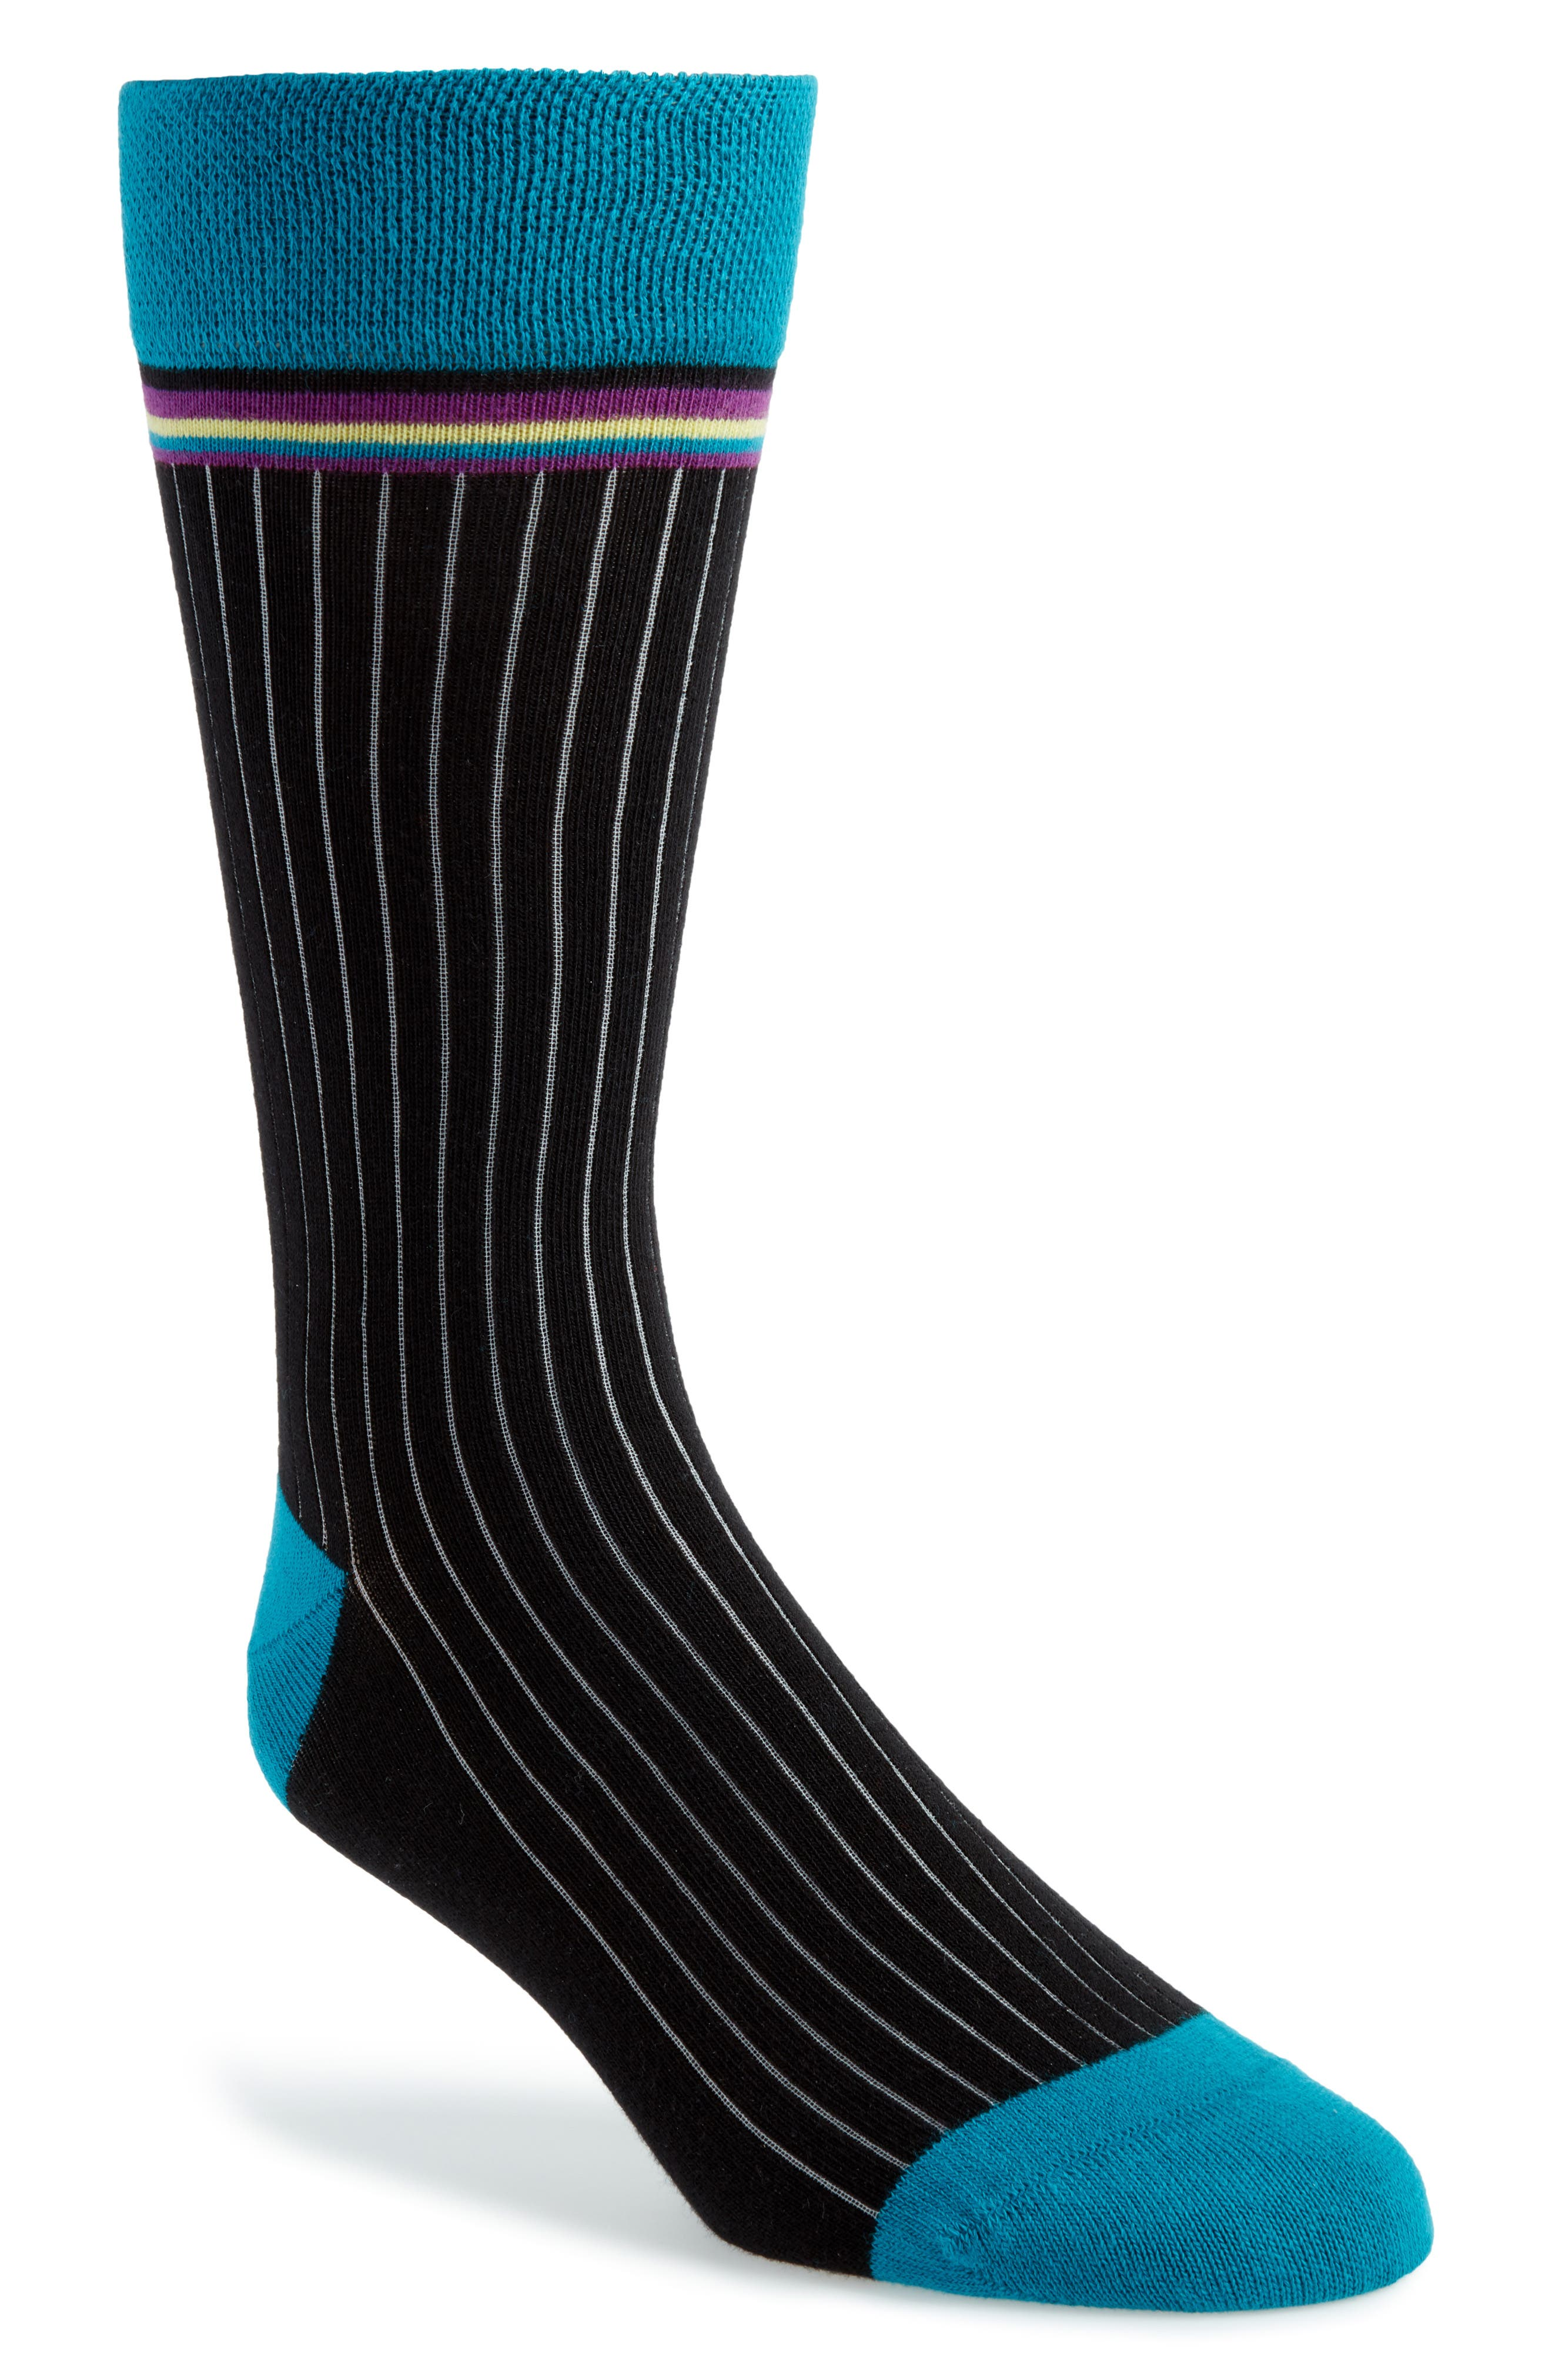 TED BAKER LONDON Pegbra Stripe Socks, Main, color, 001